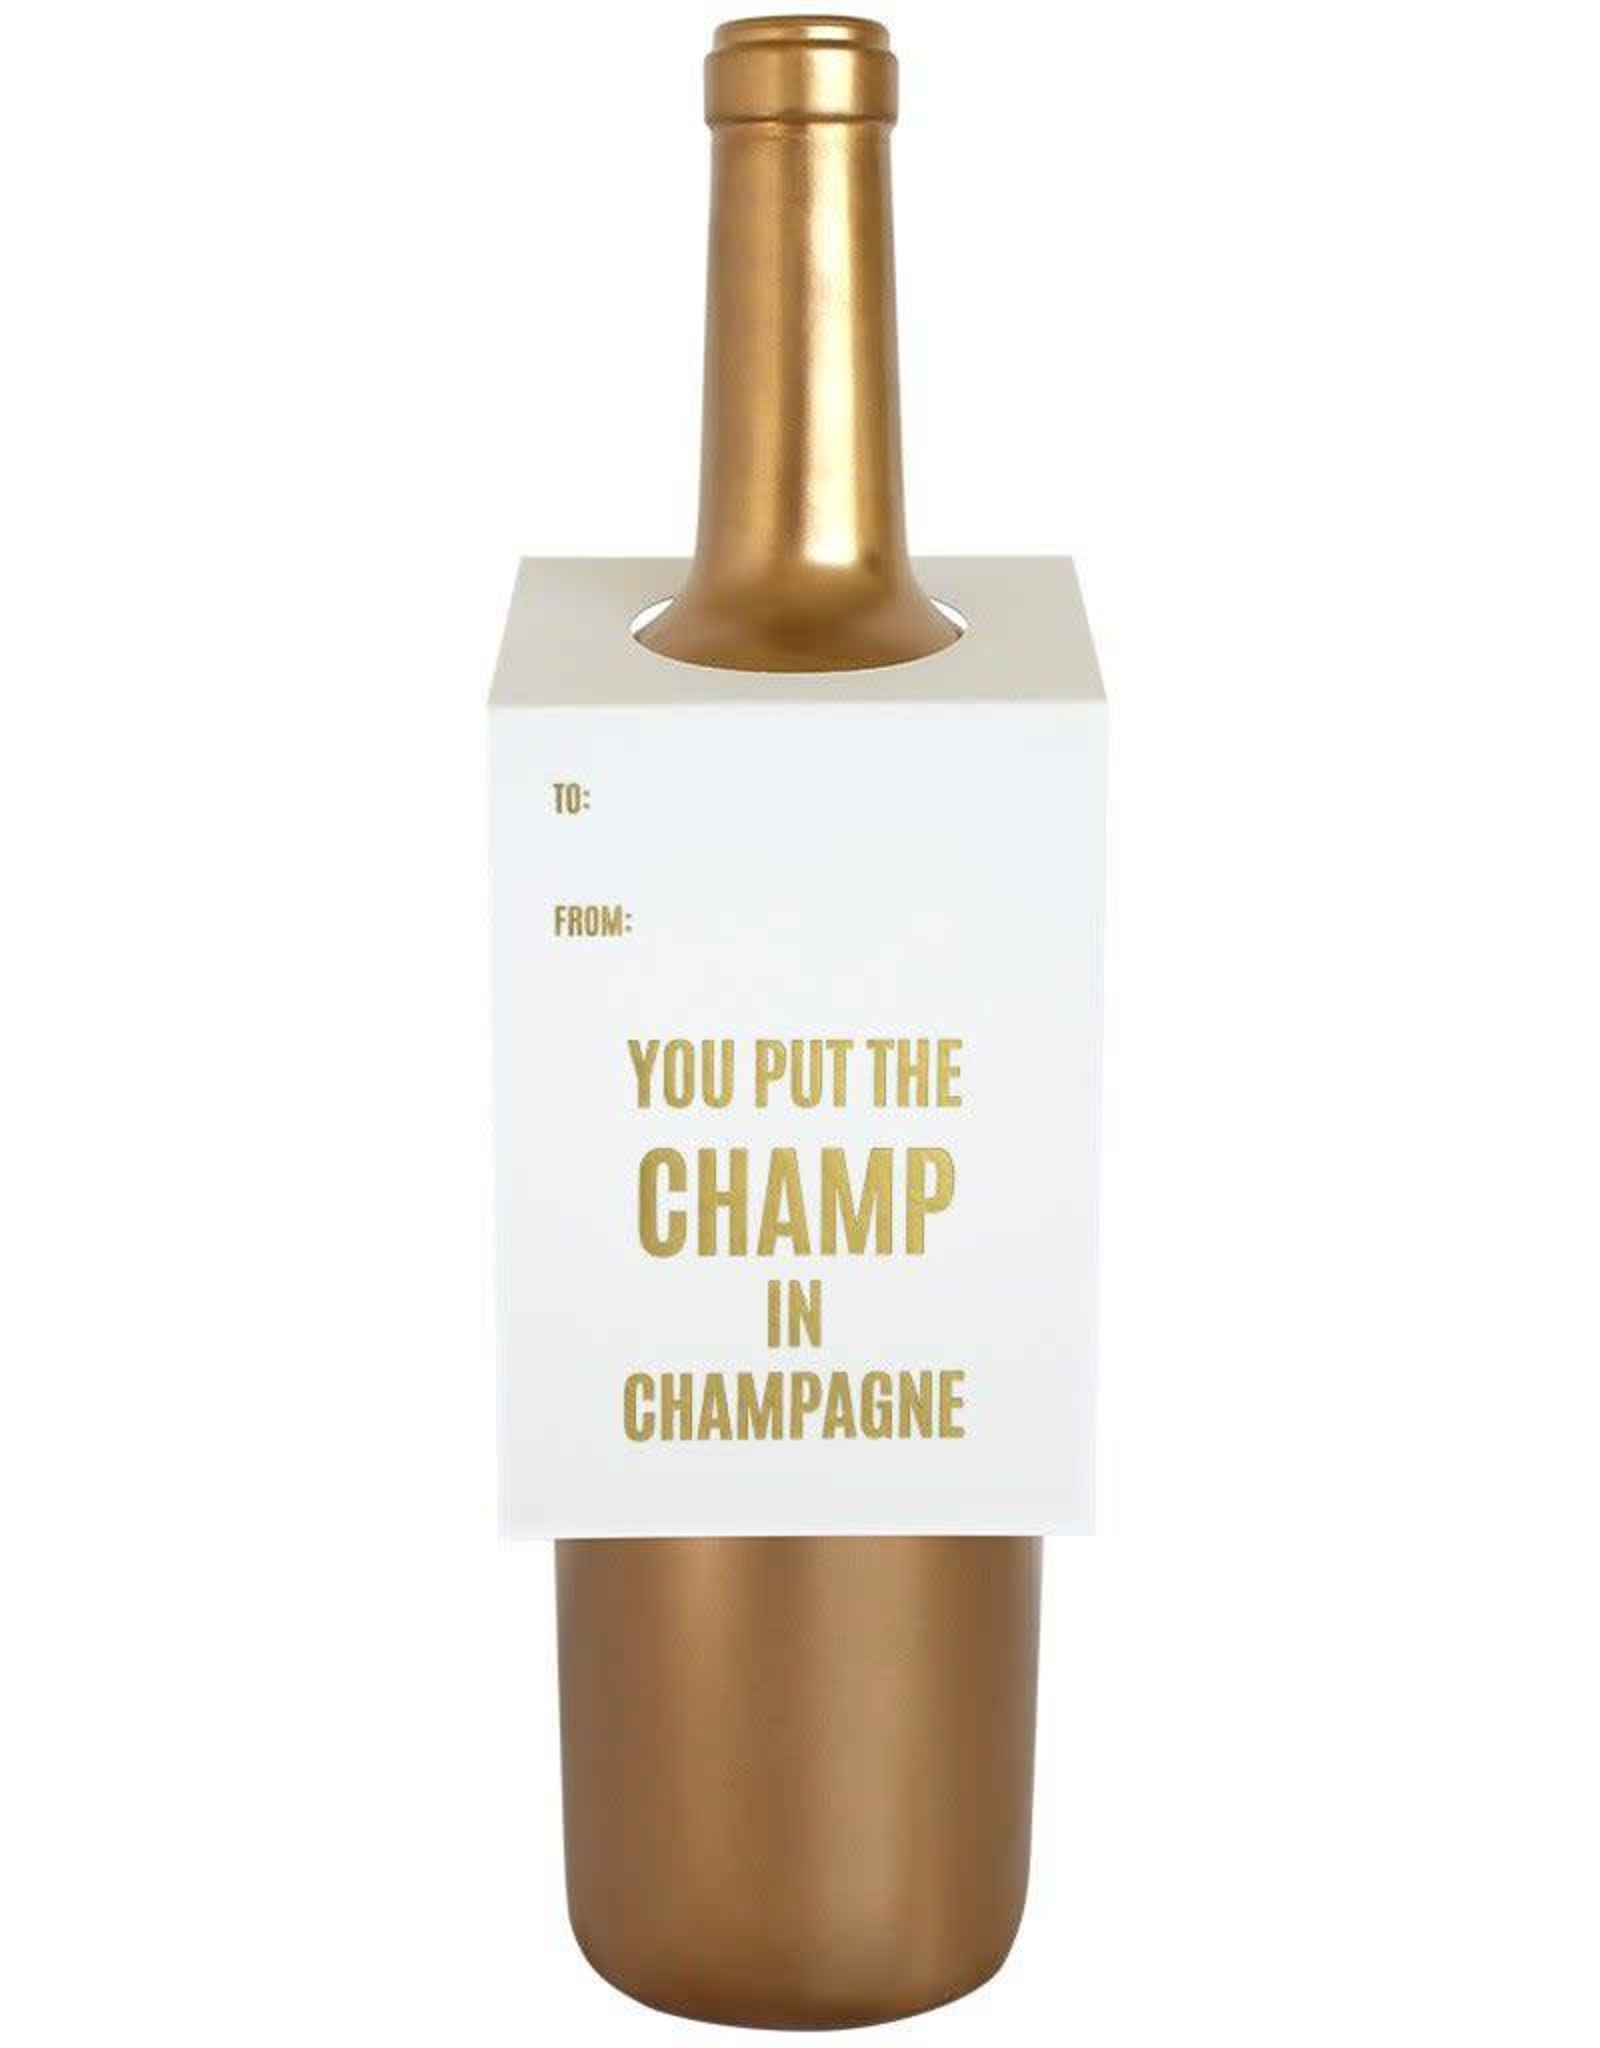 Champ in Champagne Wine & Spirit Tag